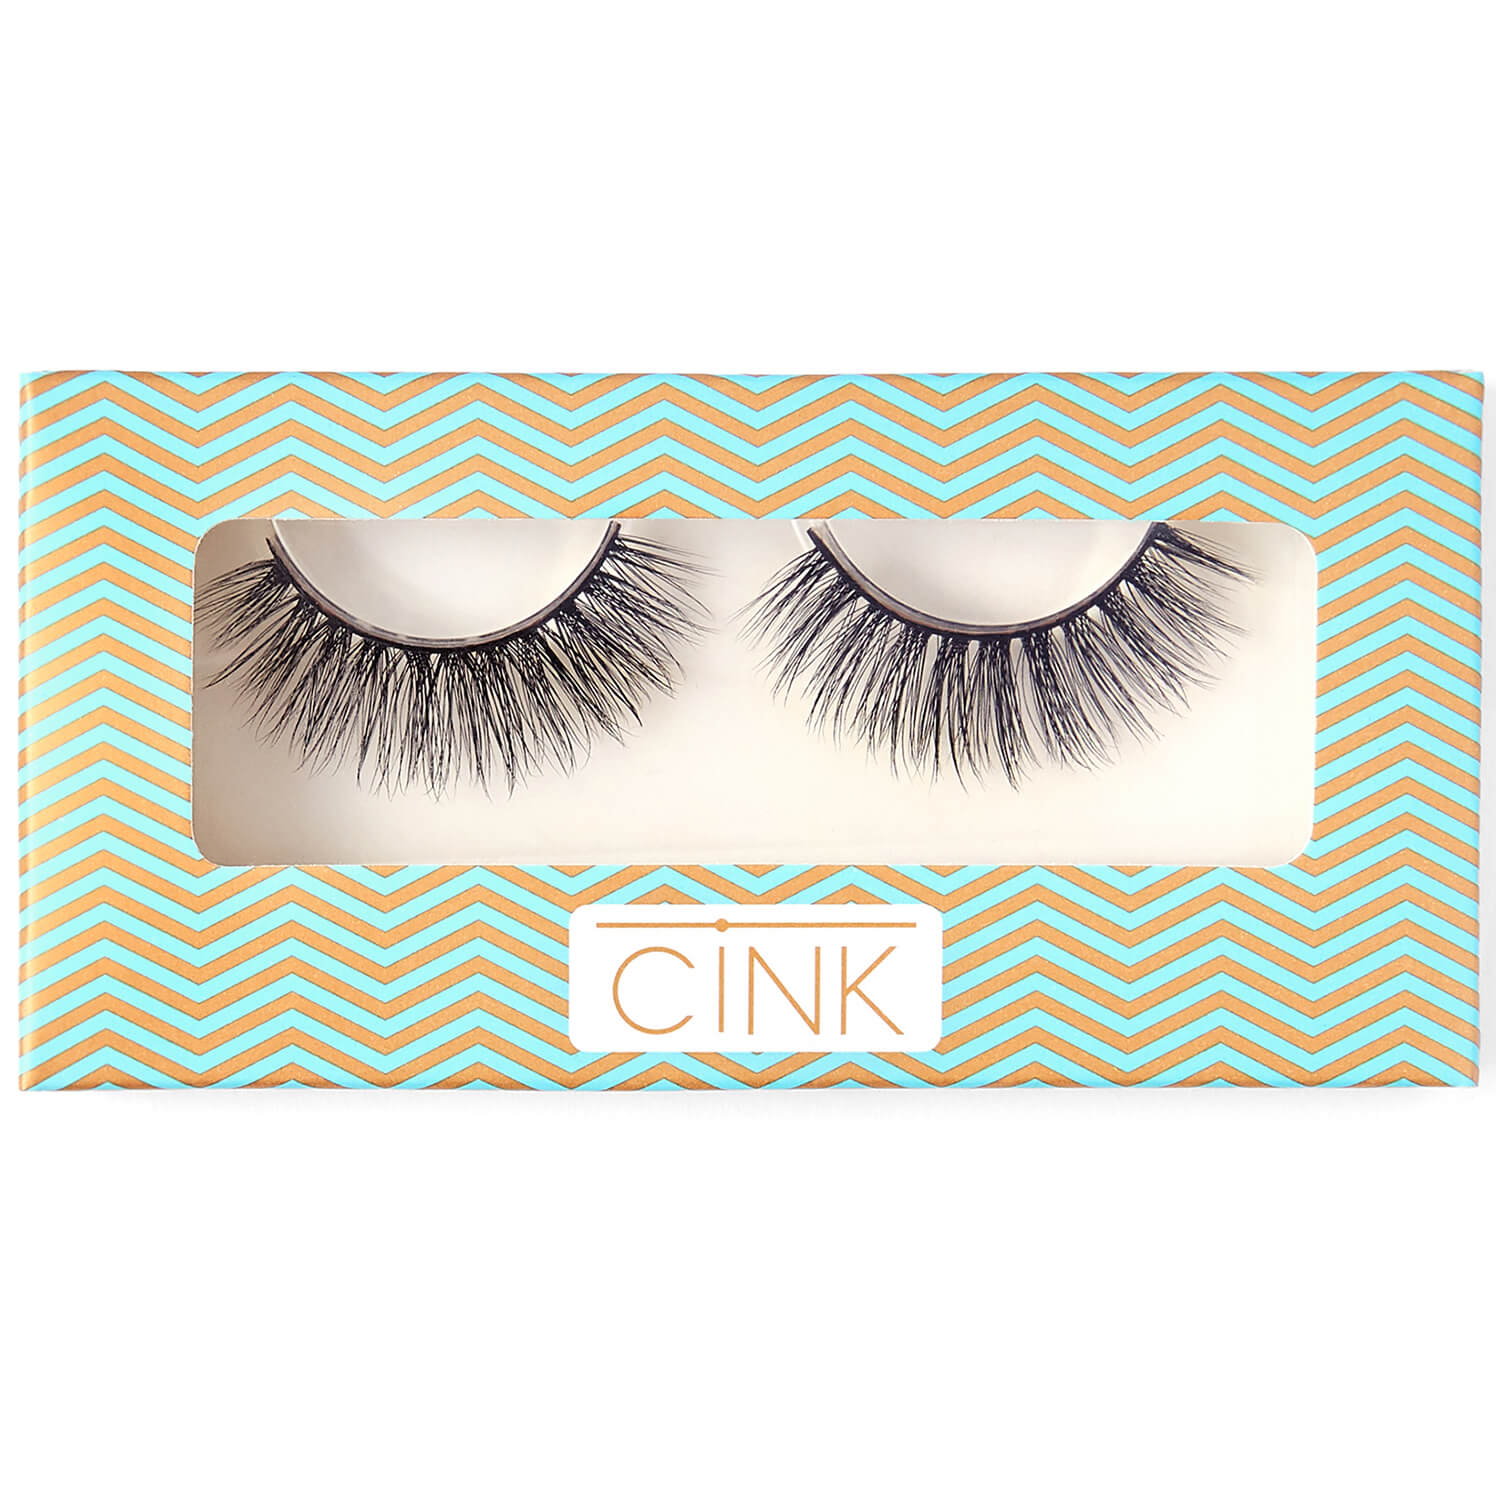 c2f9f36960e CINK Bare Necessity 3D Strip Eyelashes | GLOSSYBOX